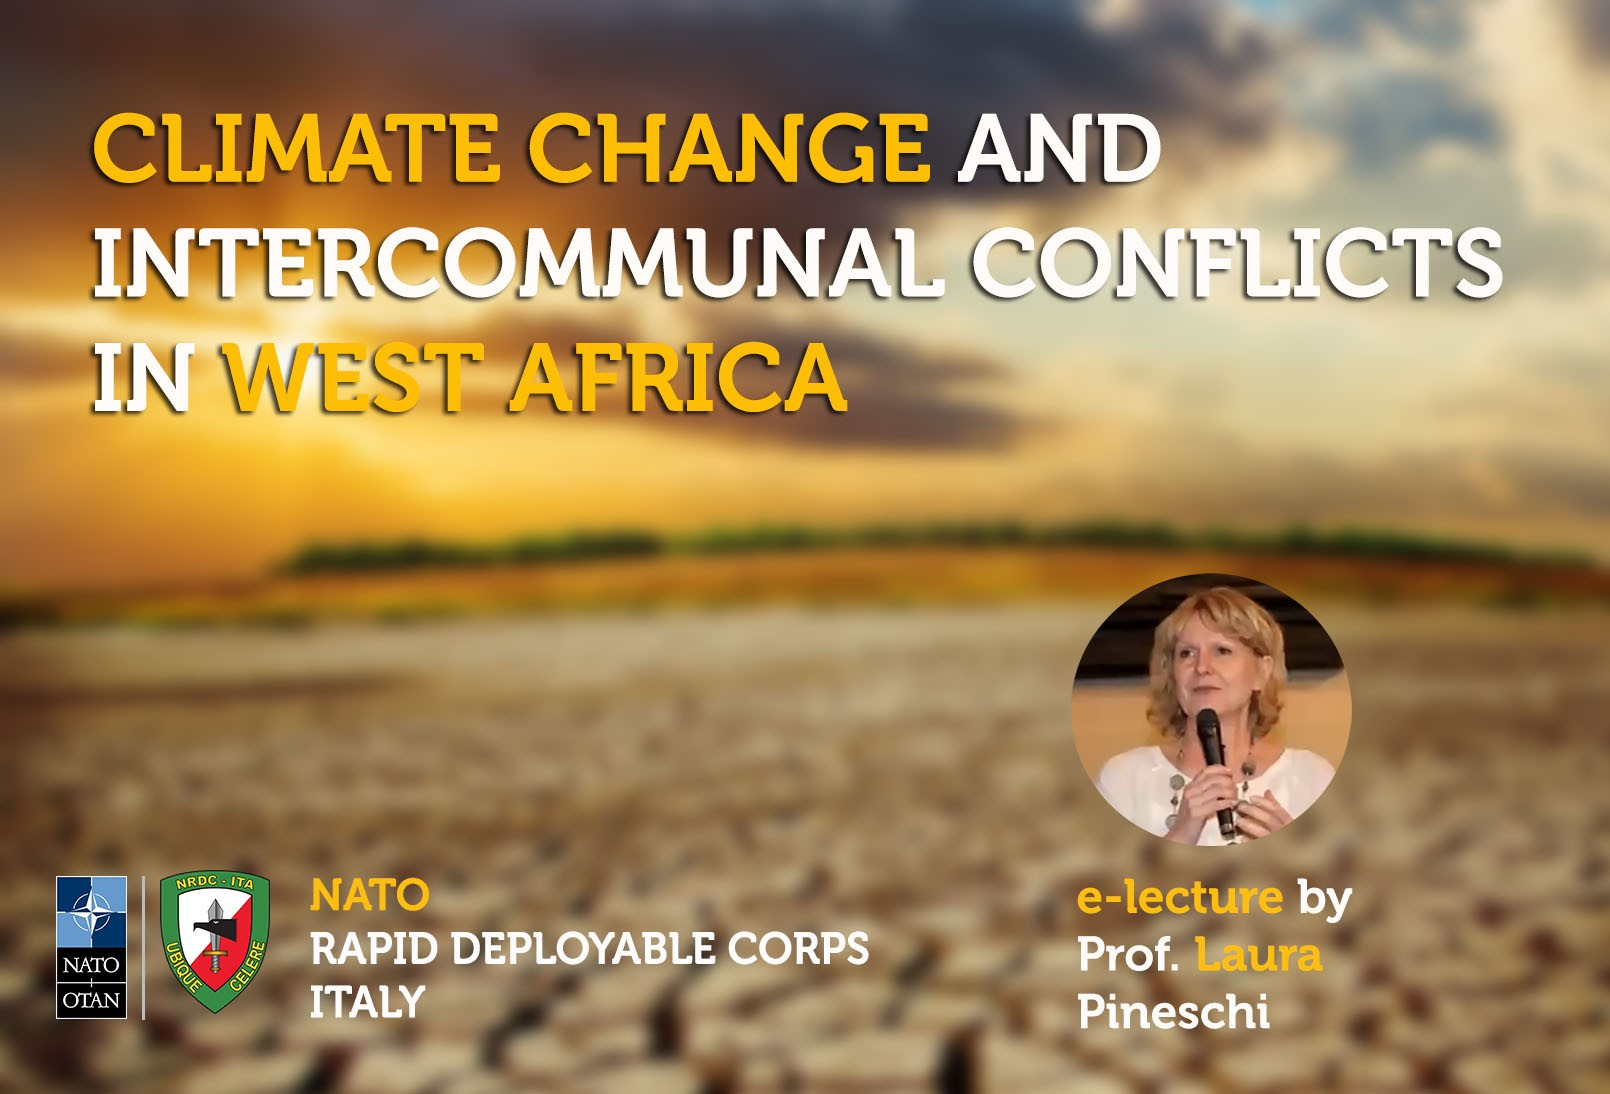 At NRDC-ITA, climate change is discussed as a